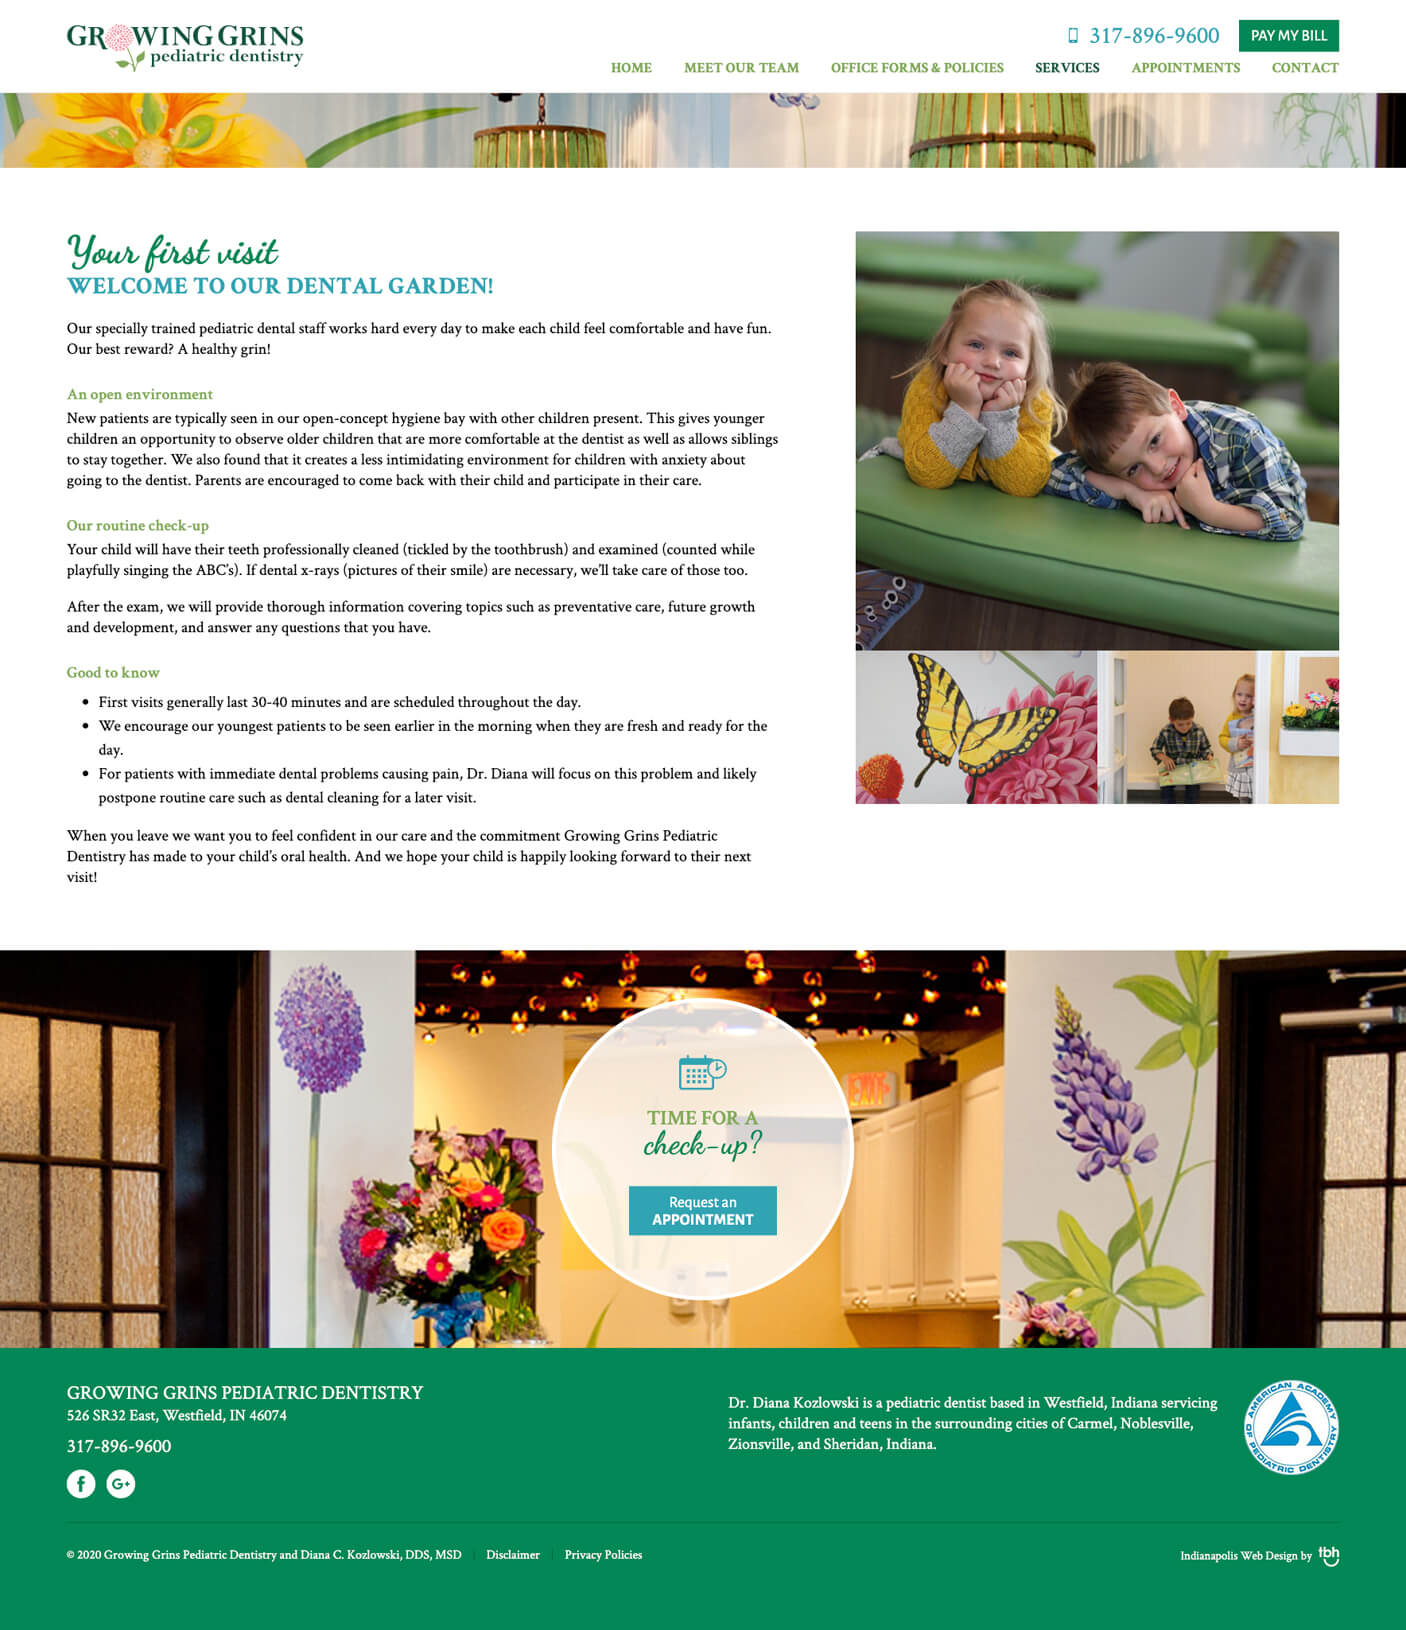 Pediatric Dentistry First Visit web page